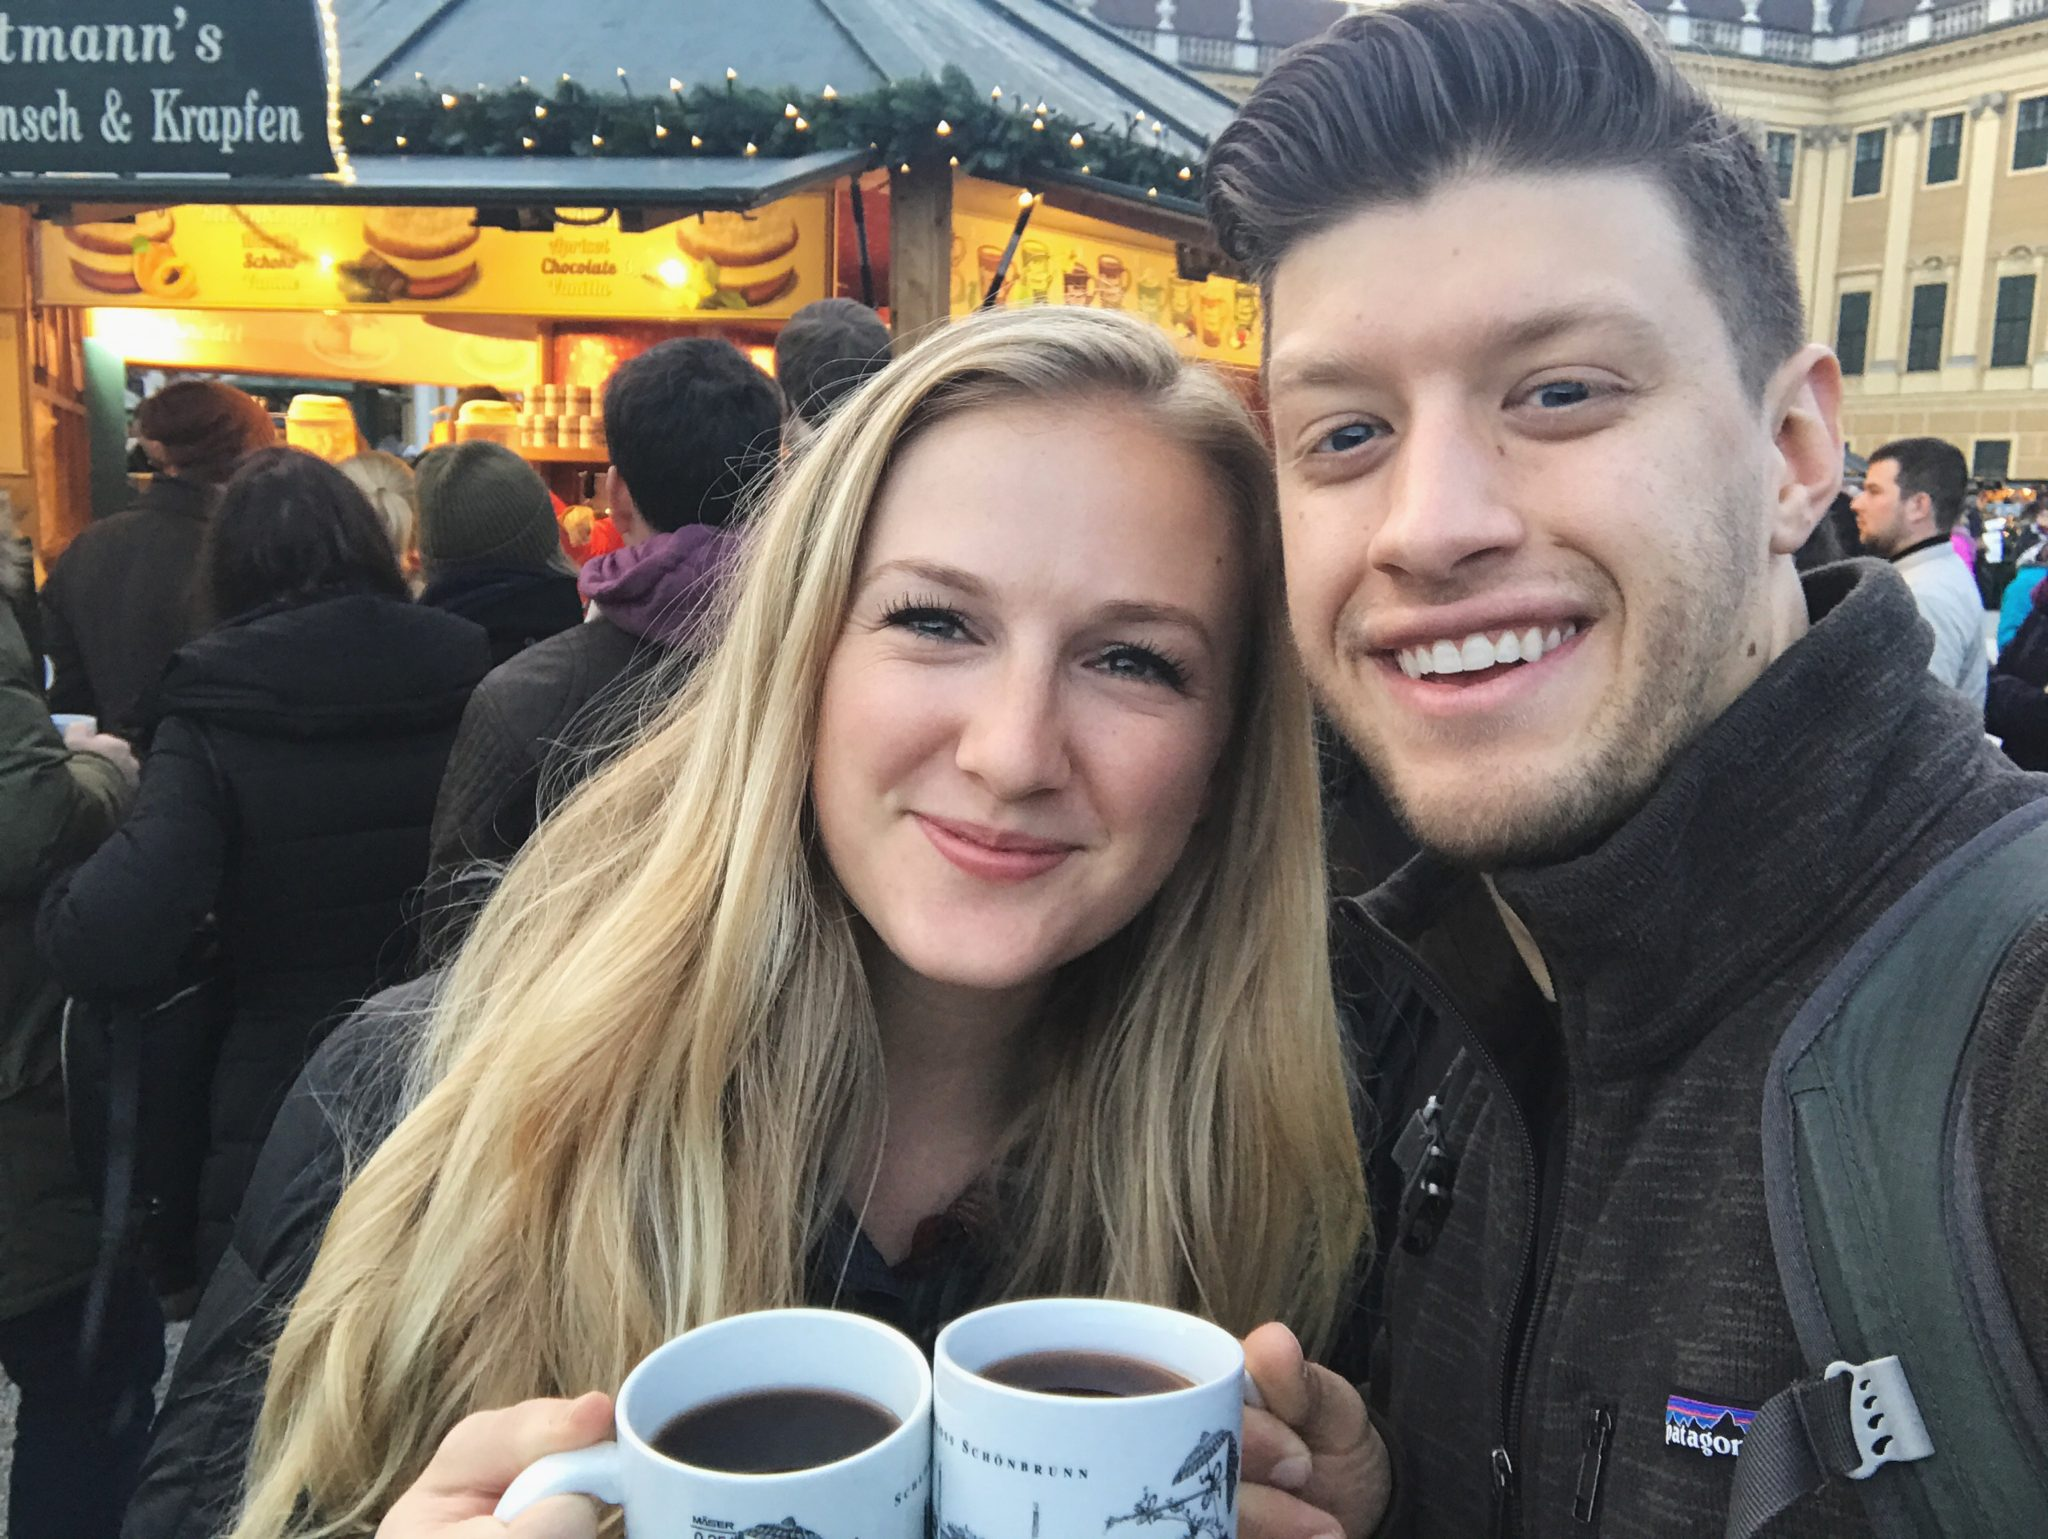 Drinking mulled wine at Vienna Christmas Market